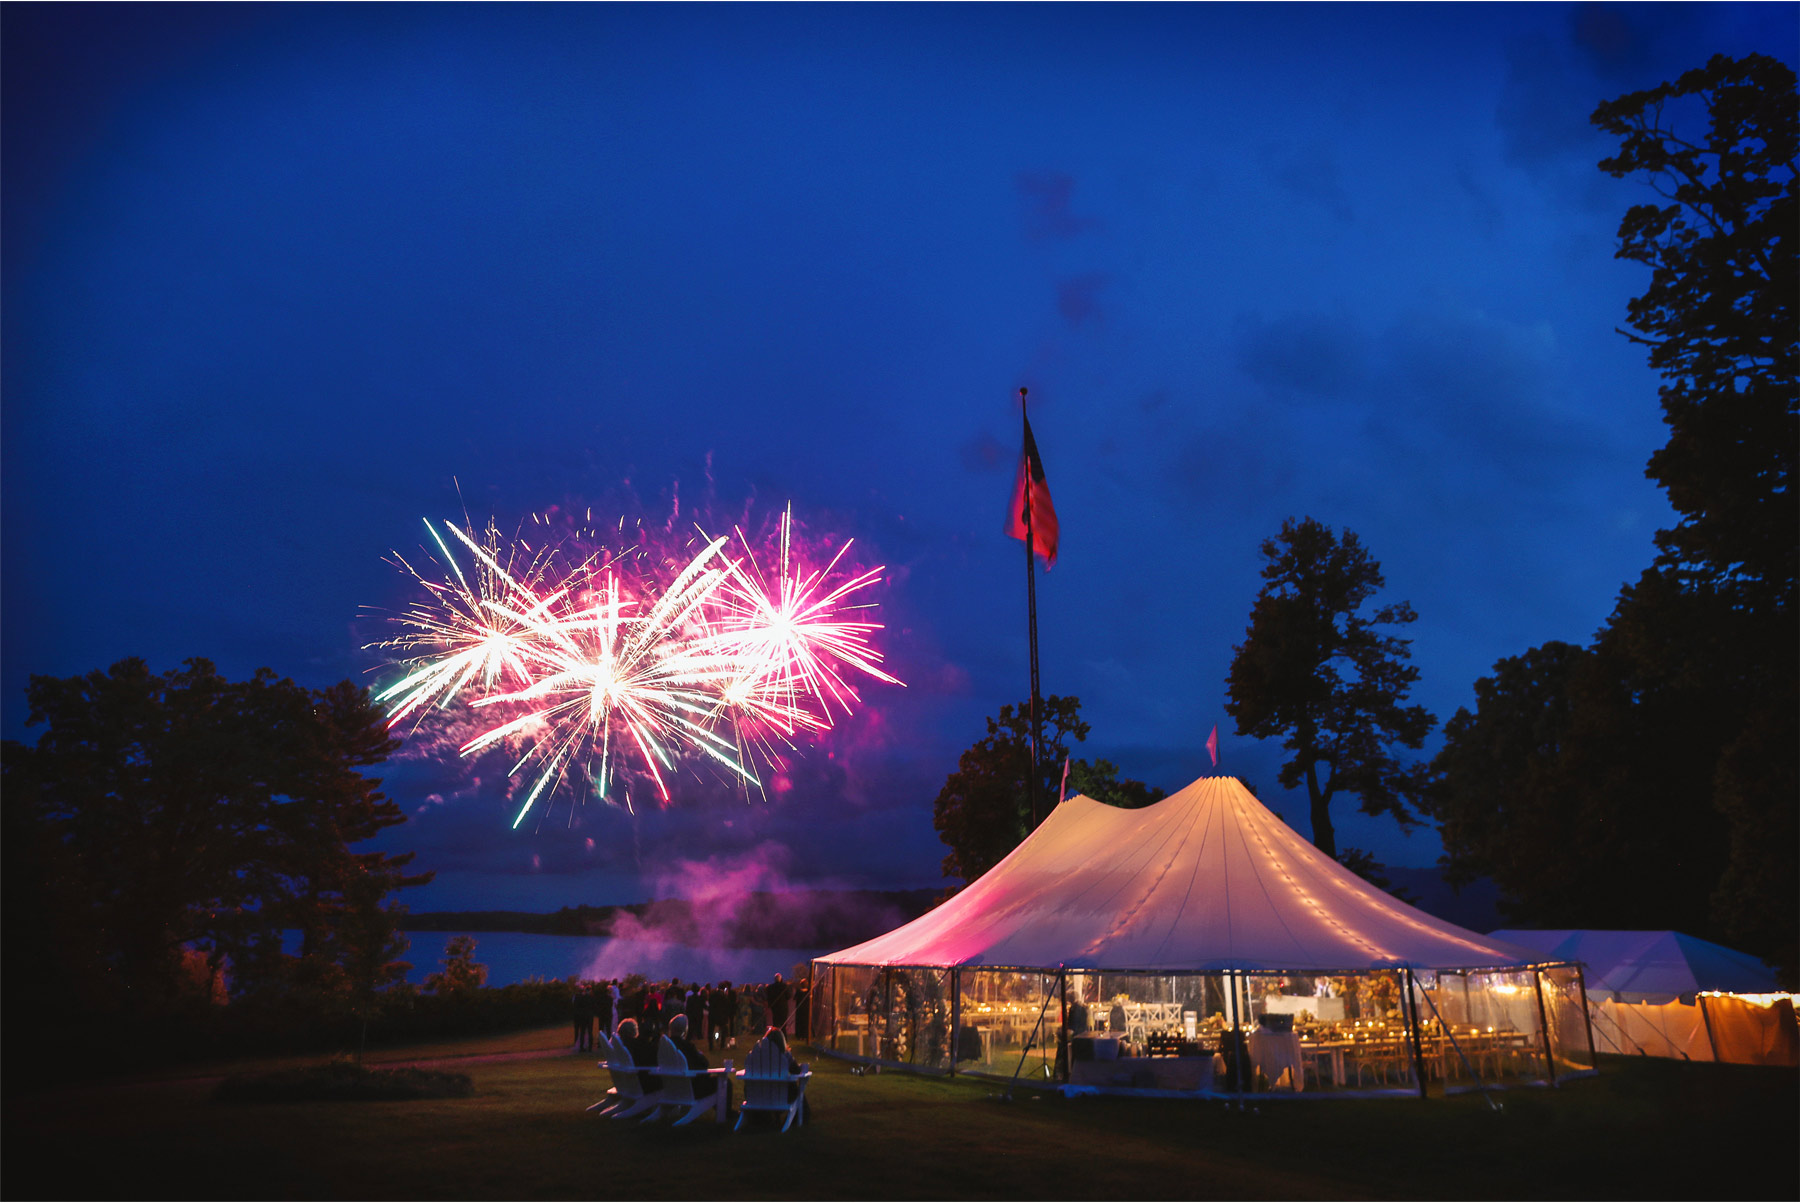 27-Vick-Photography-Wedding-Stouts-Island-Lodge-Wisconsin-Summer-Reception-Outdoor-Fireworks-Tent-MiJa-and-Lucius.jpg